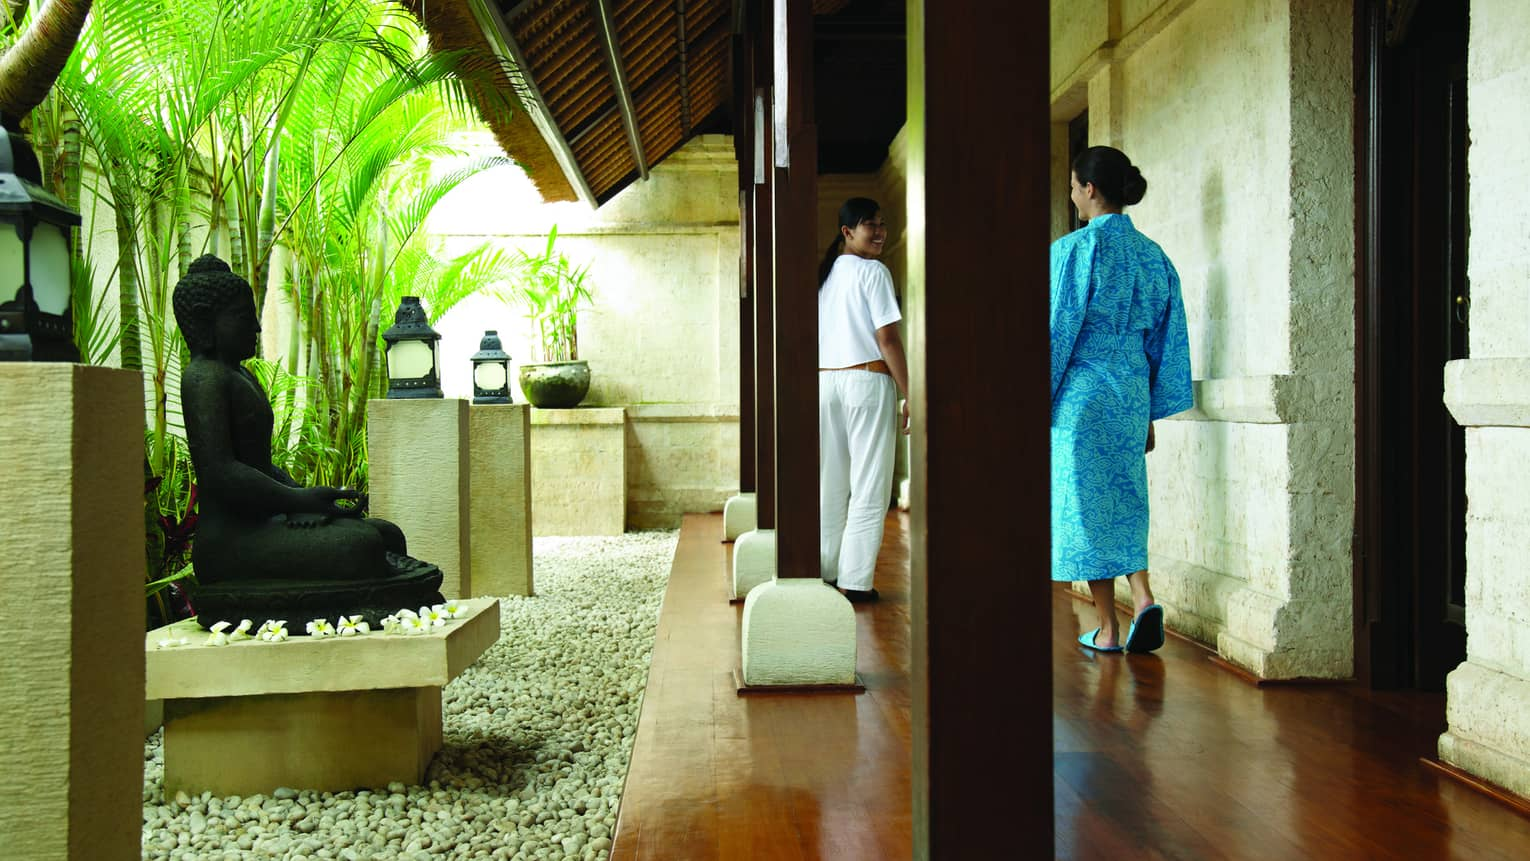 Woman in blue robe walks down hallway past black Buddha statue, rock garden